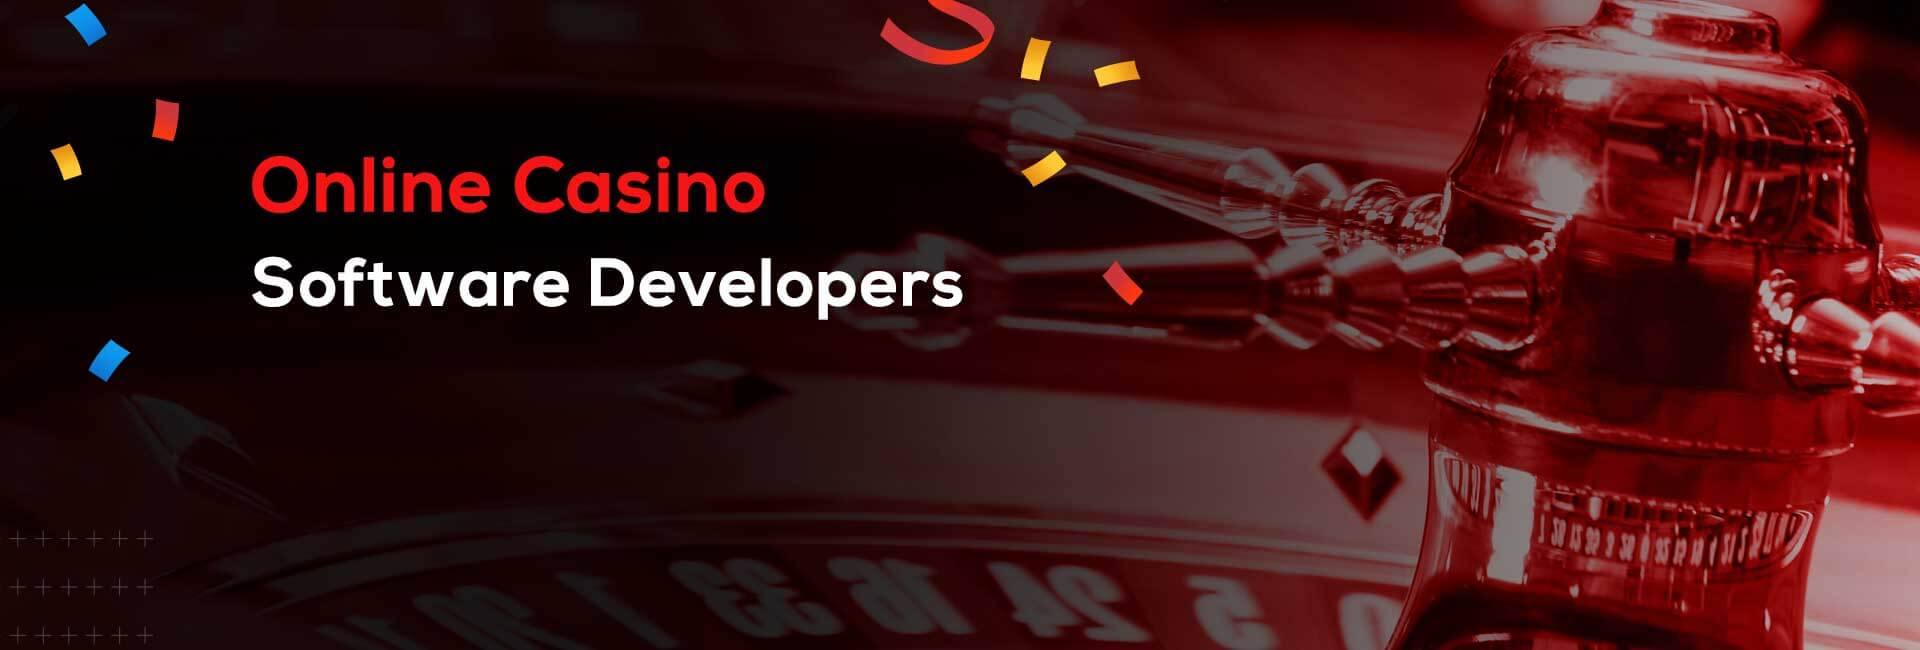 Online Casino Software Development